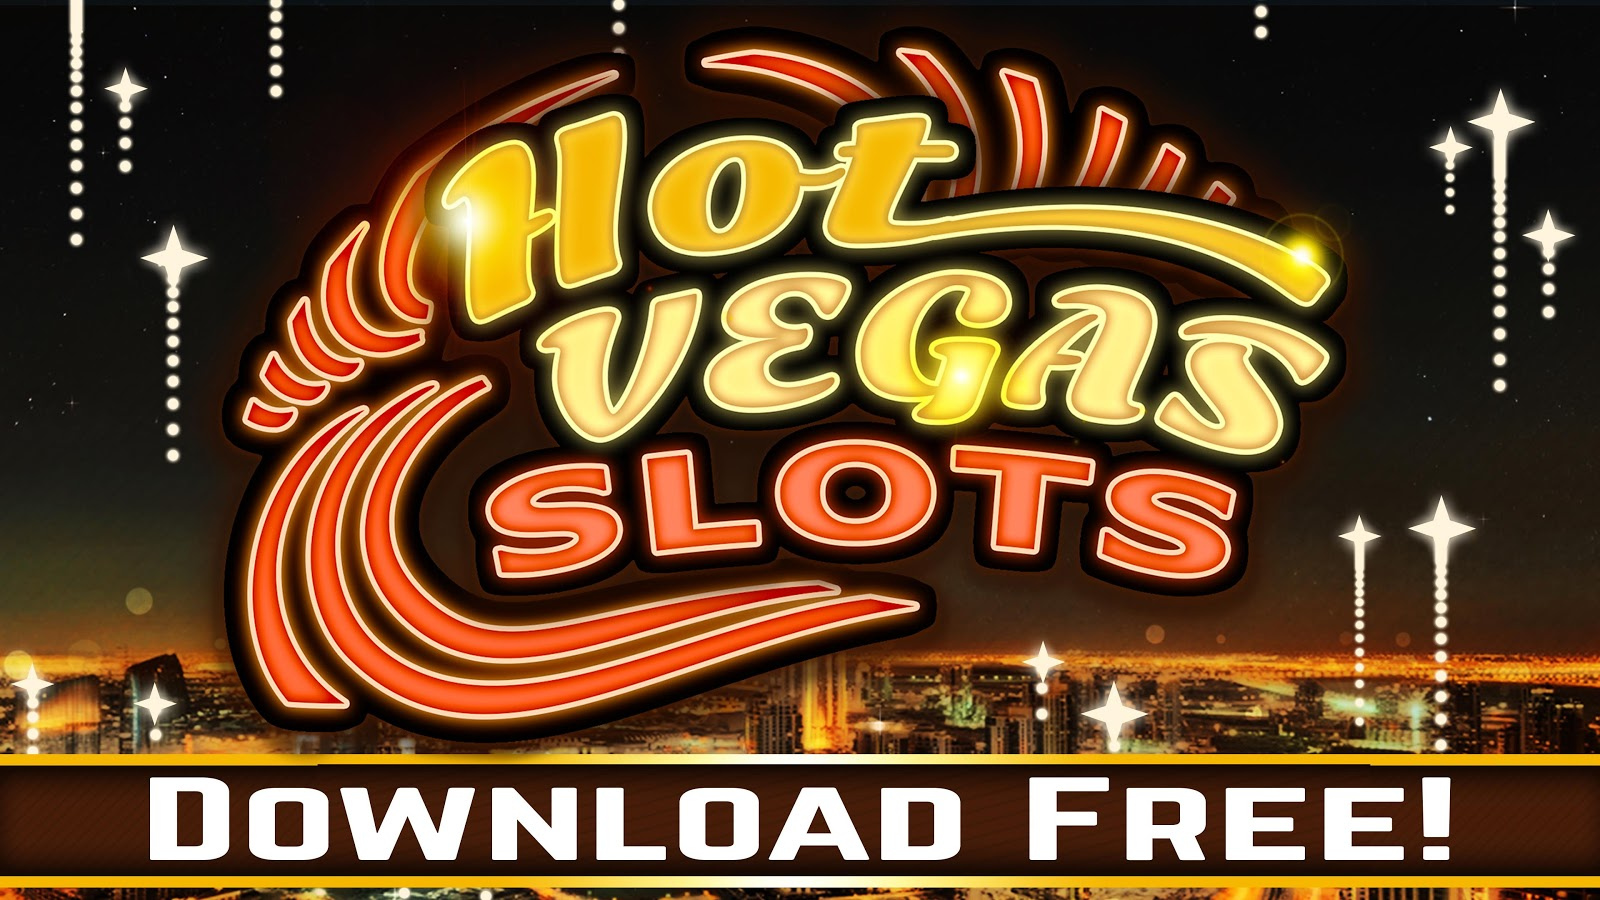 Cuckoo Slots - Try it Online for Free or Real Money